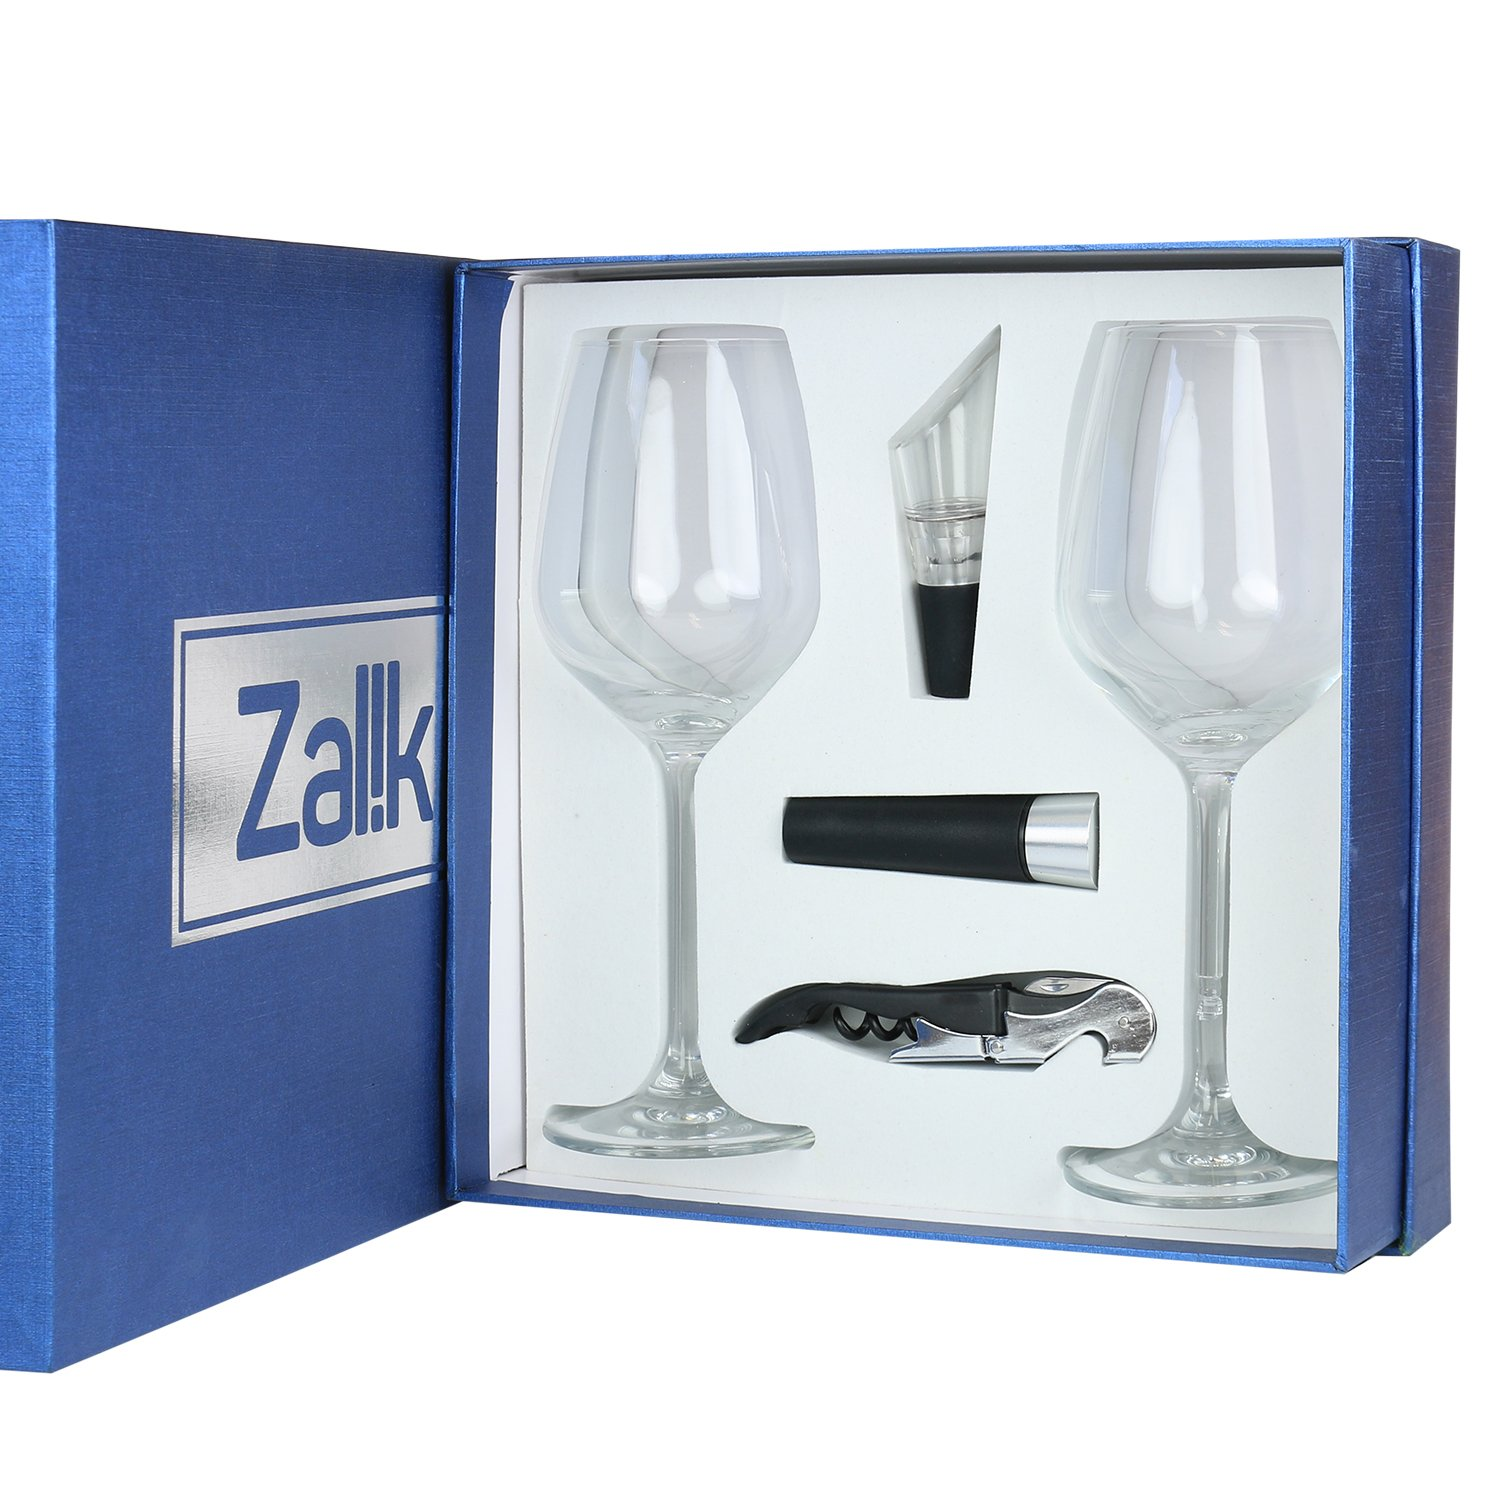 Zalik Wine Glasses Gift Set - Set Of 2 Wine Glasses, Wine Opener, Wine Stopper And Wine Aerator Pourer For Enhanced Flavor - Perfect Gift For Every Occasion - Wine Accessories - Elegant Gift Box by Zalik (Image #2)